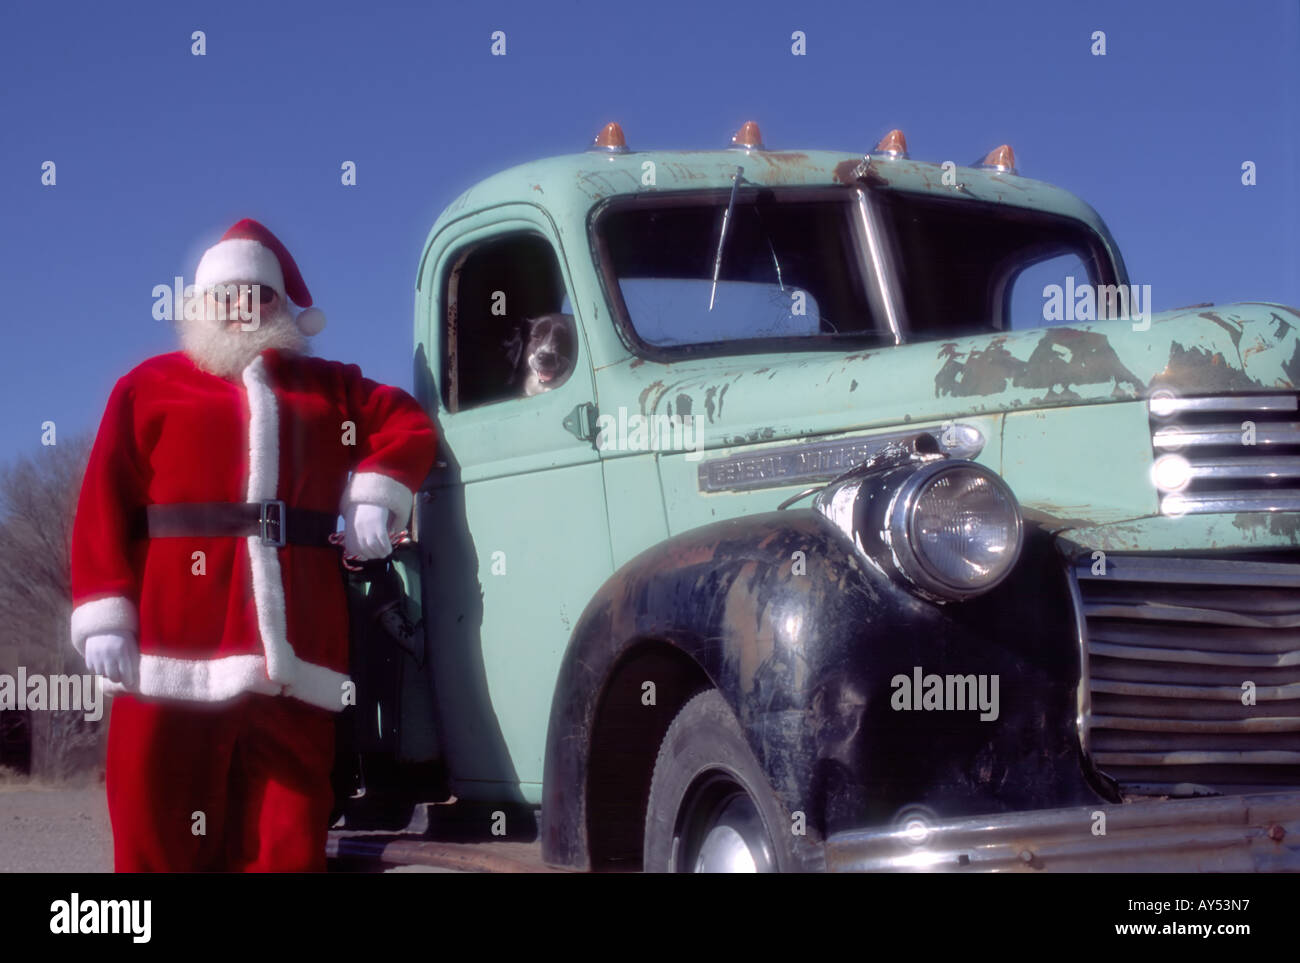 MR 690 Richard Rumph as Santa Claus arrives with a different kind of sleigh in Capitan, New Mexico. - Stock Image